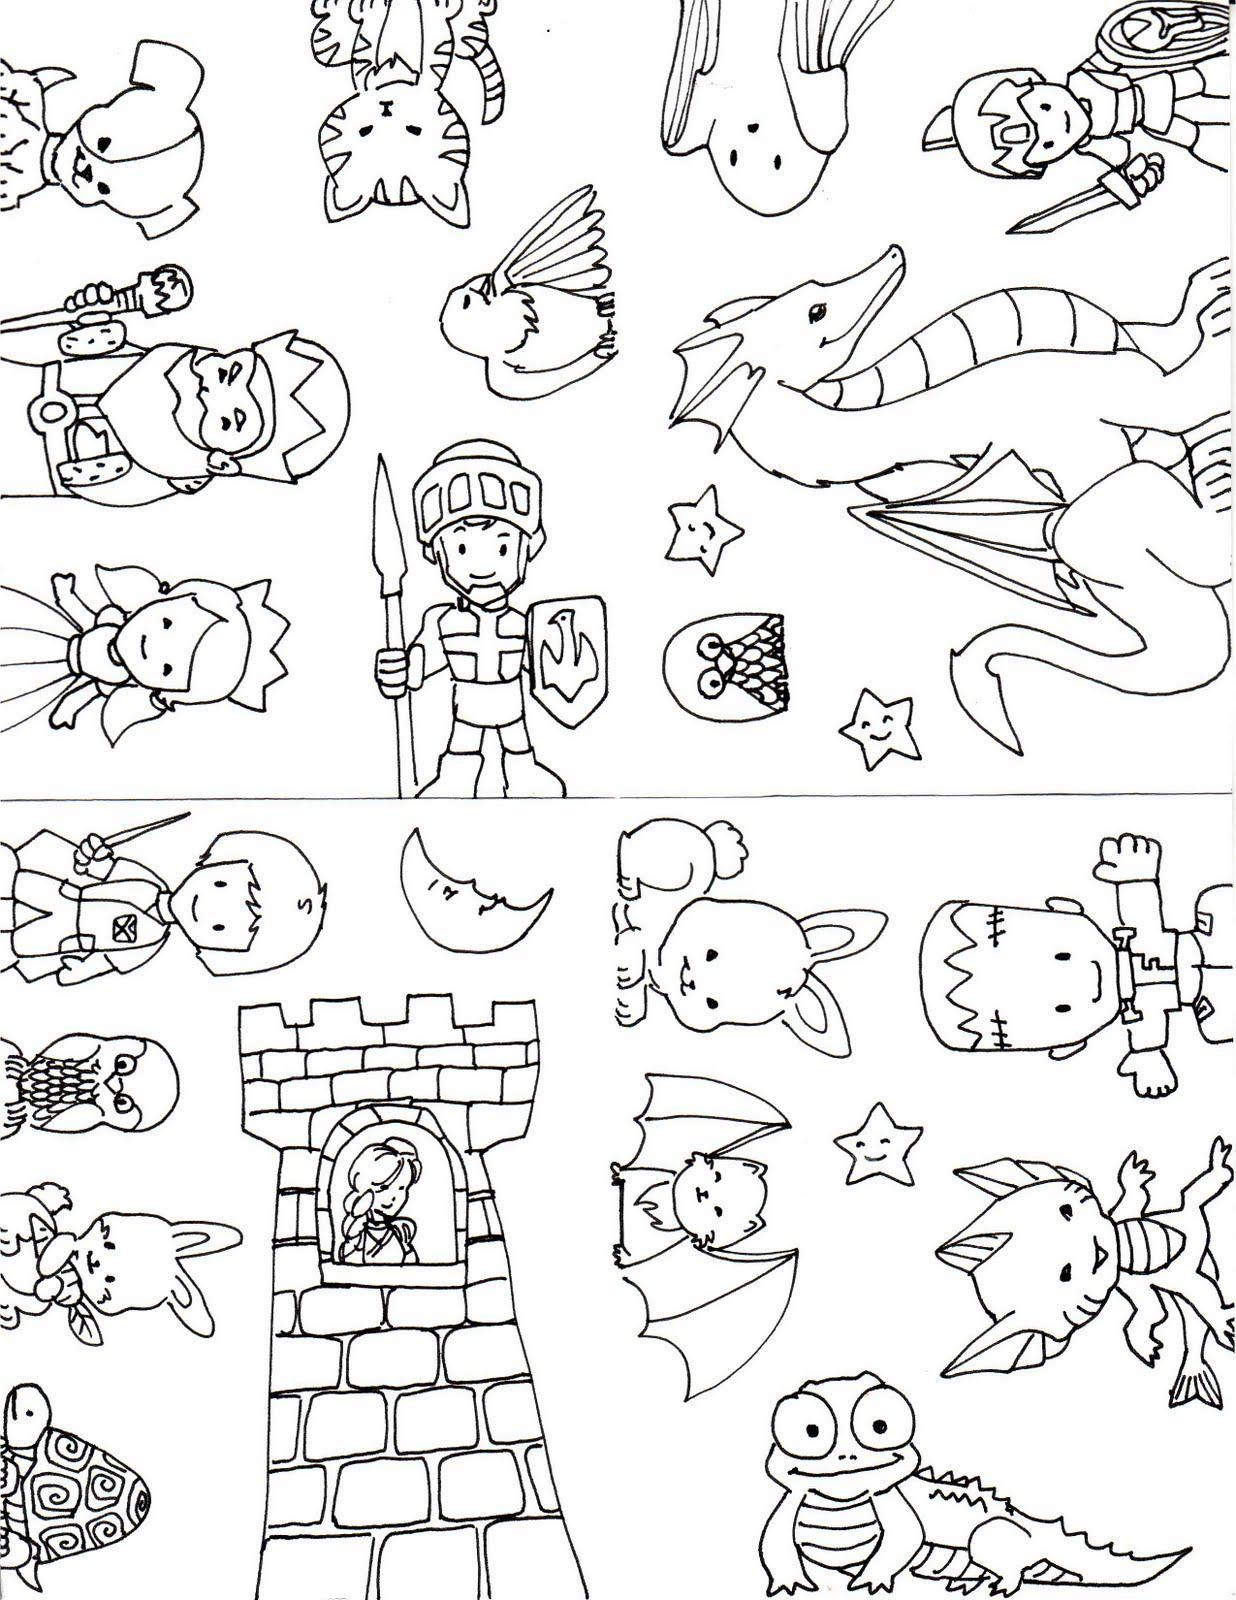 Kid Sketches: Pop-Up Castle Templates and Samples